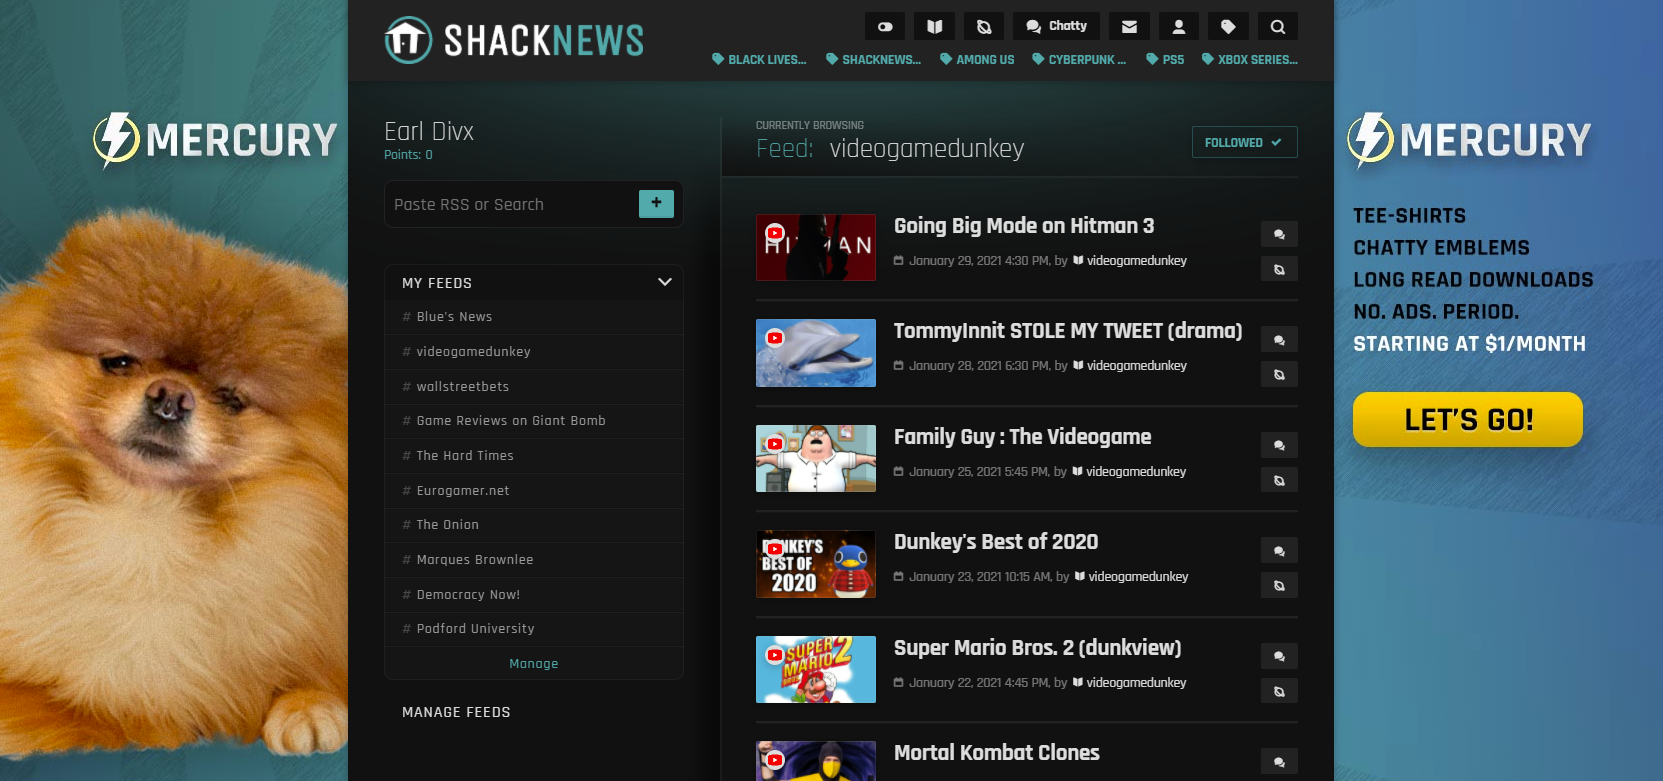 You can even follow YouTube channels with Shacknews Reader!